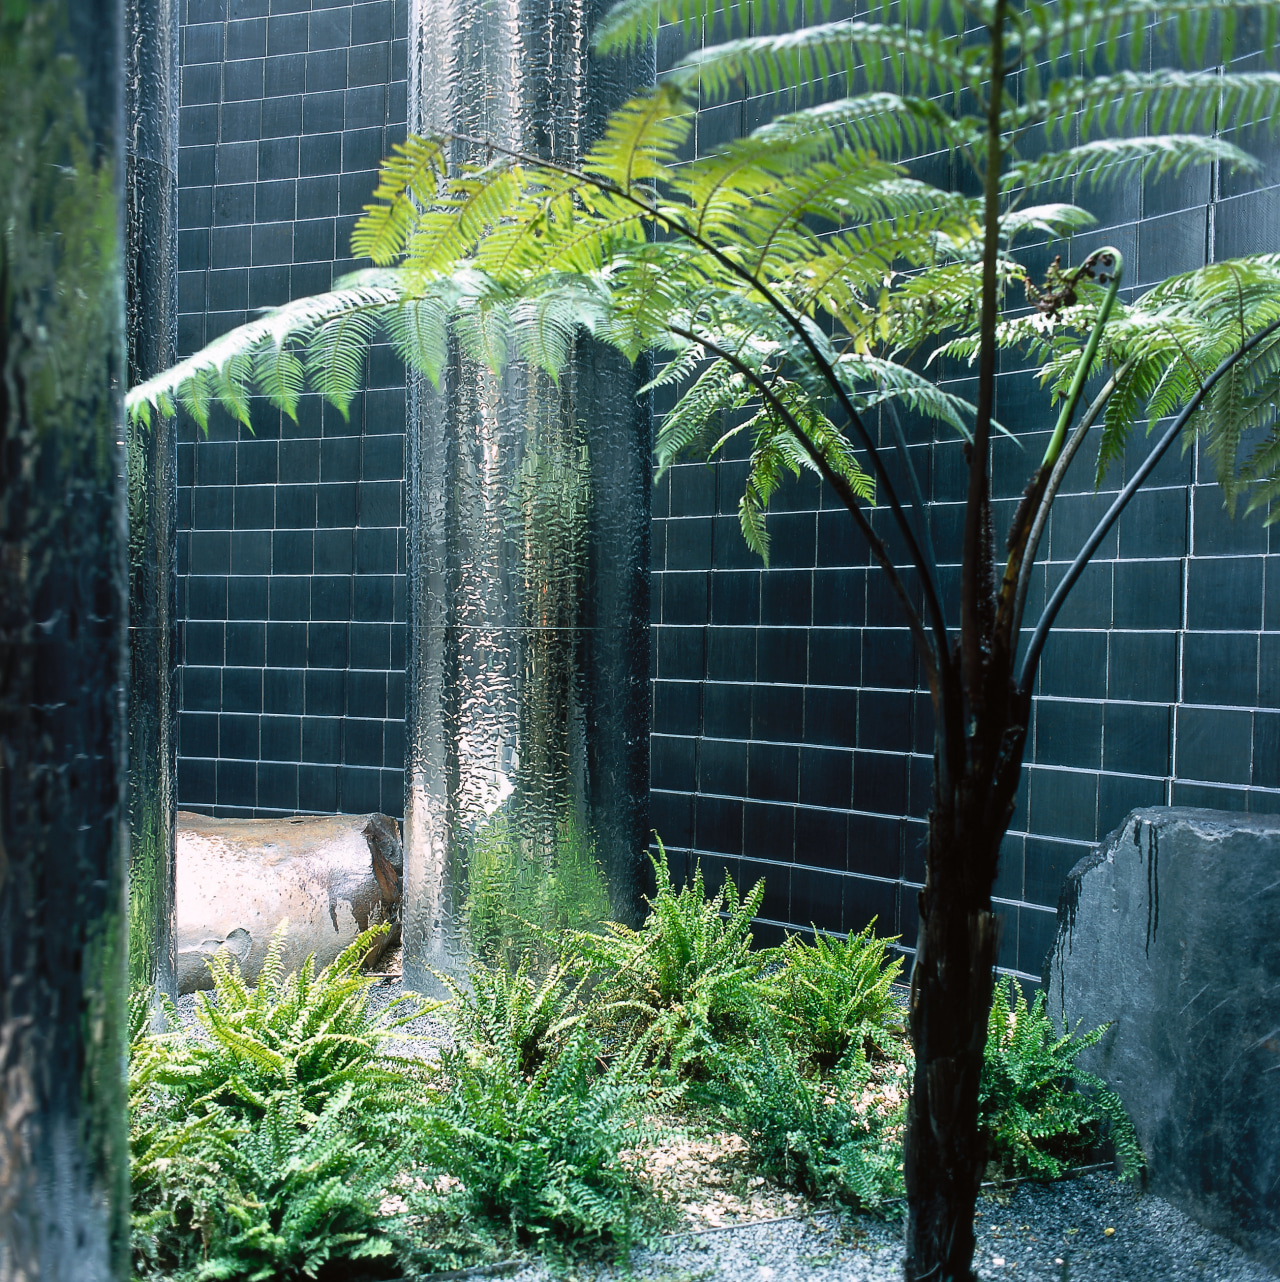 Water Systems Treatment Specialists Ltd organized the treatment biome, fence, grass, outdoor structure, plant, tree, vegetation, black, green